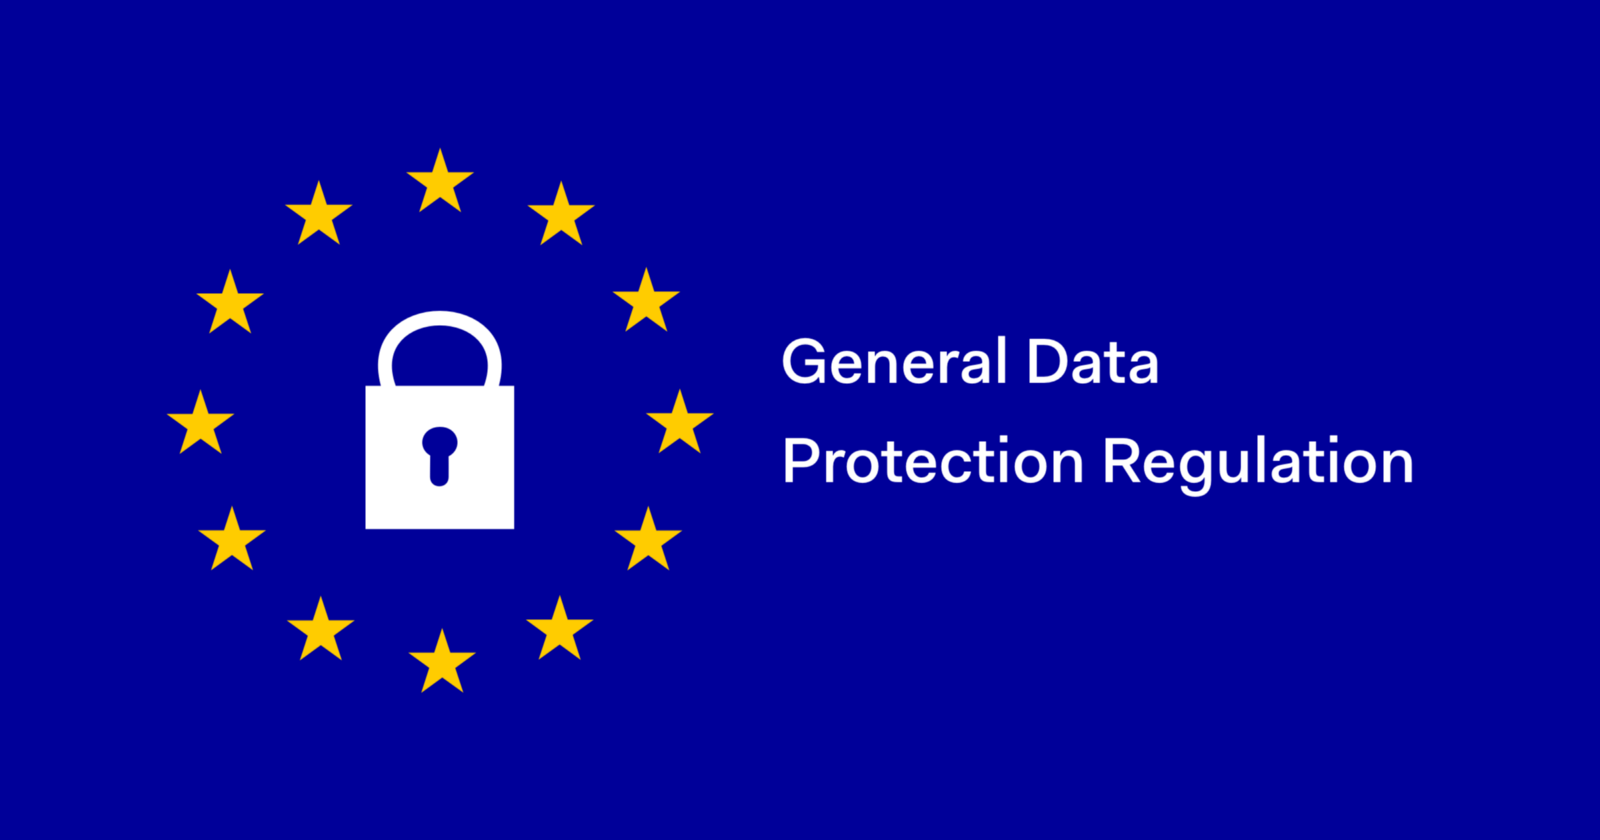 /gdpr-decoded-part-2-the-specifics-17ad575230a8 feature image